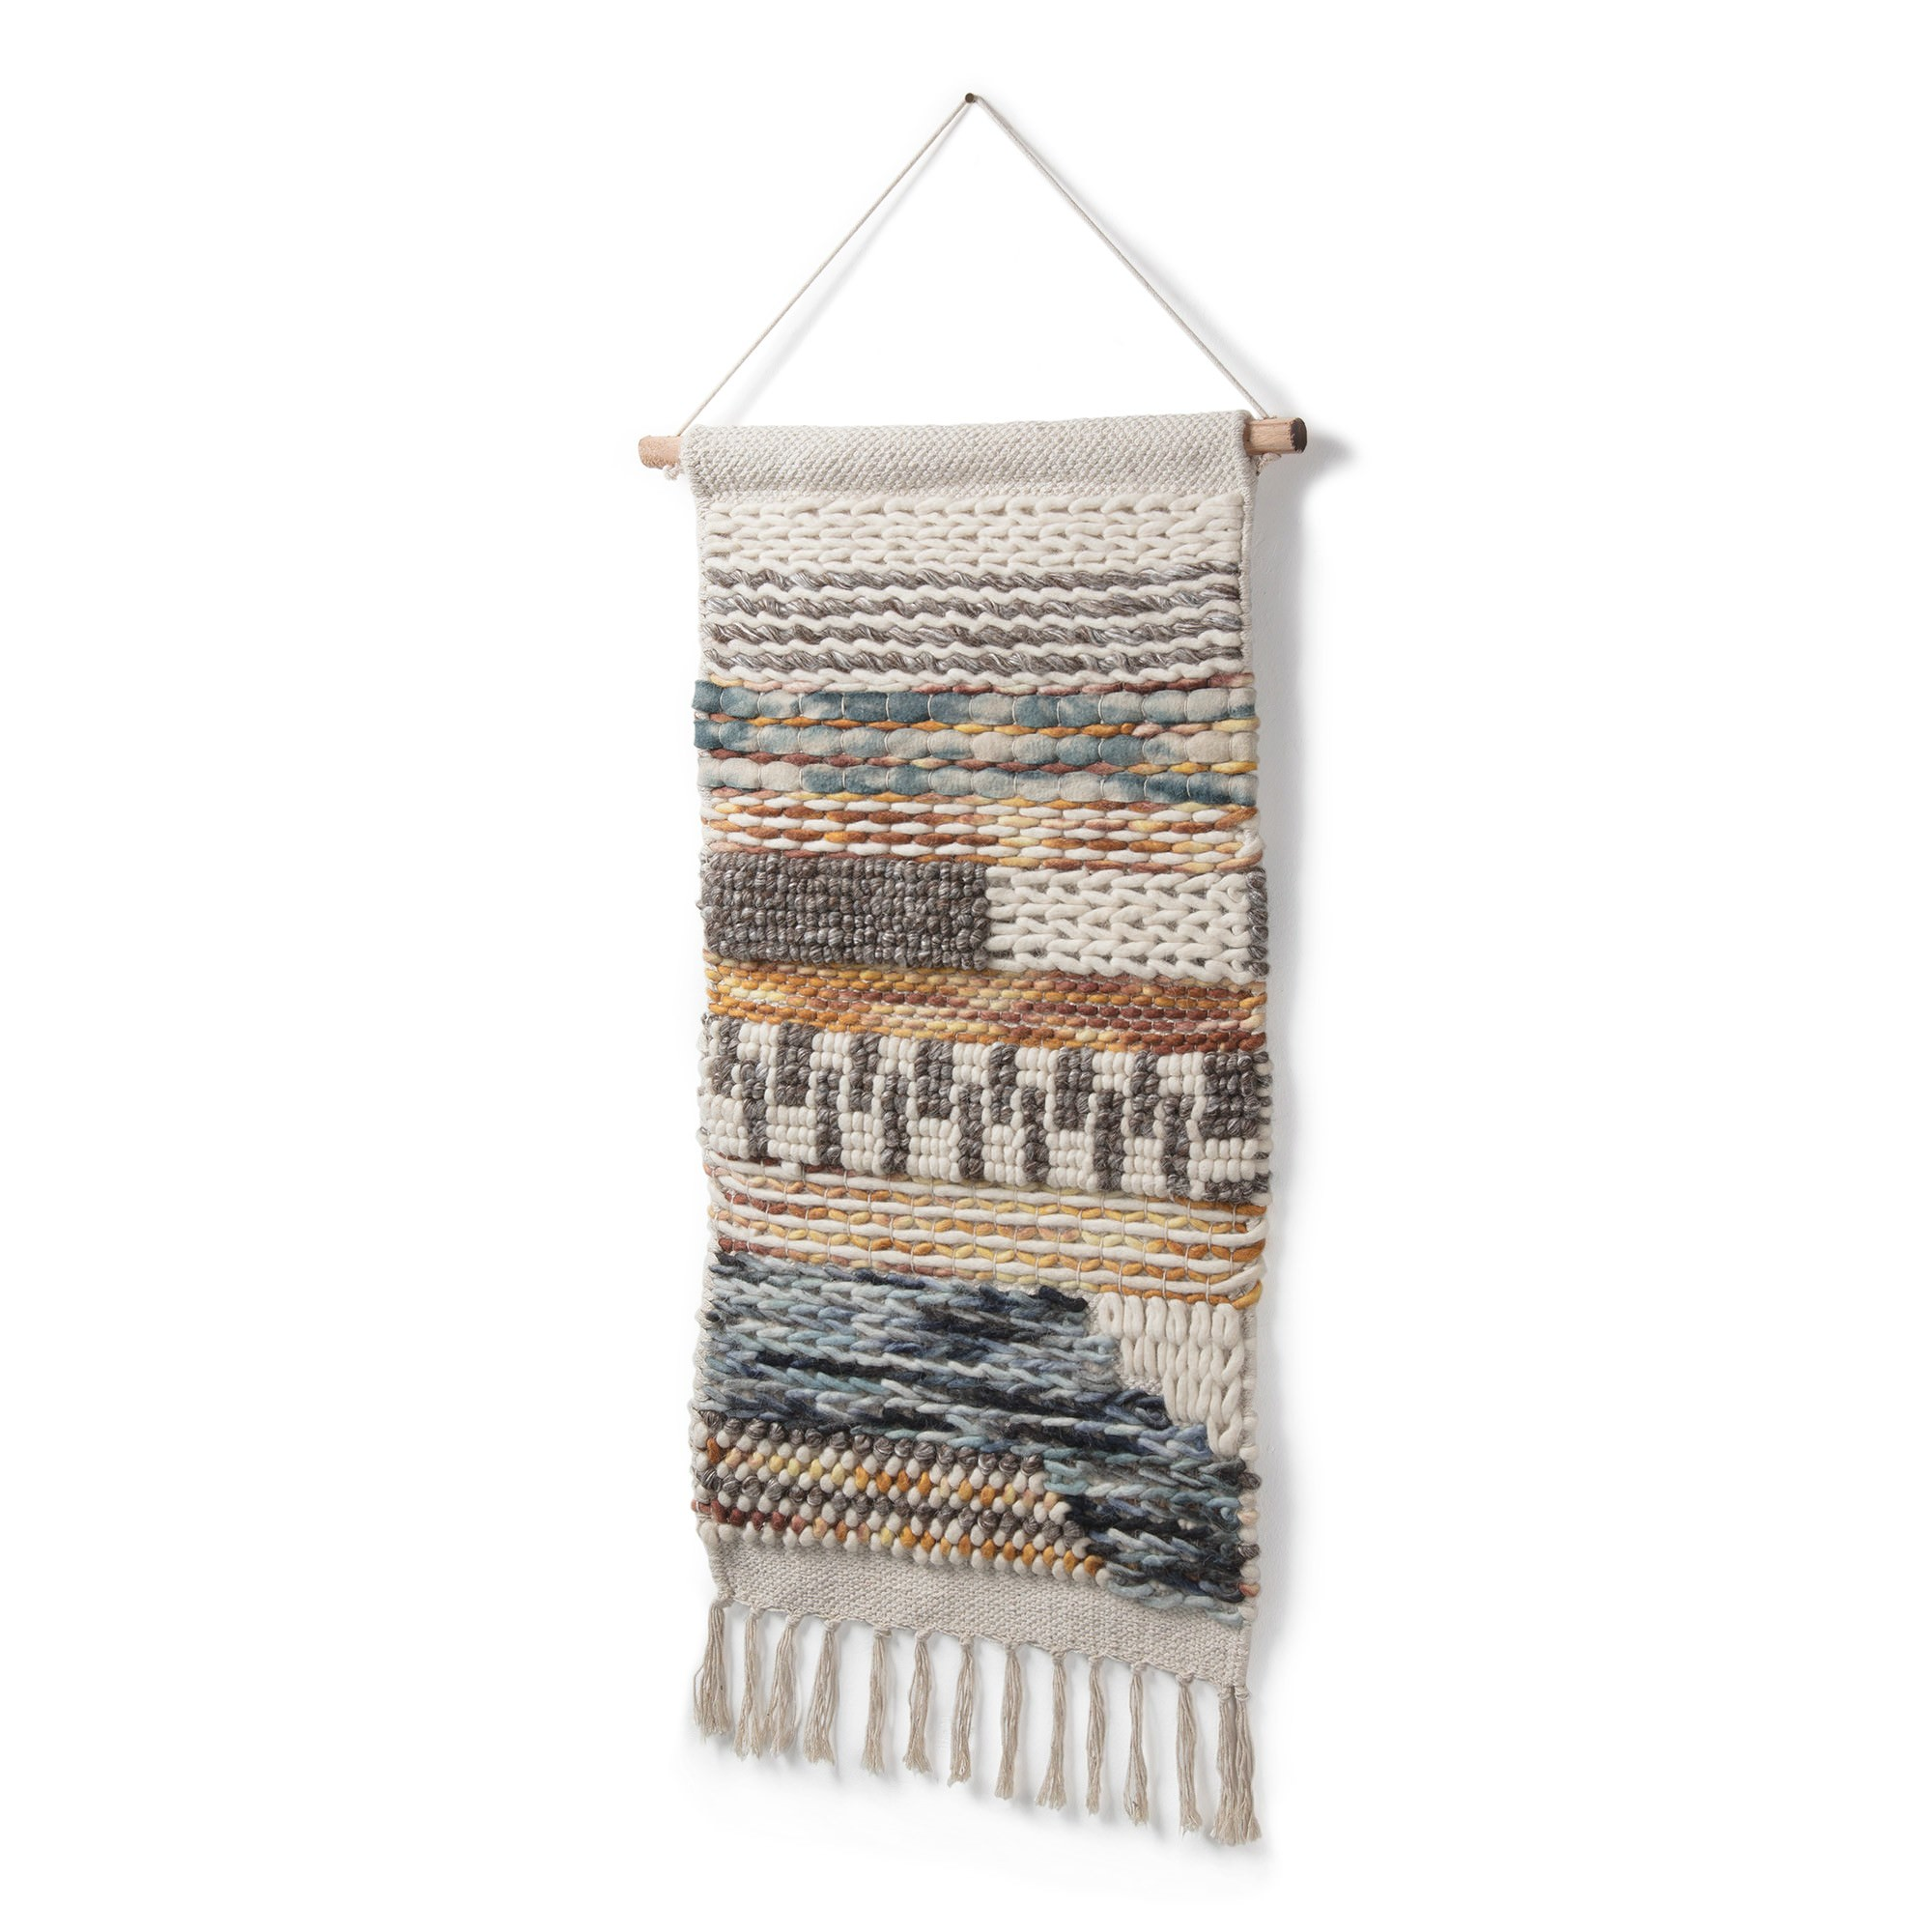 Elicia Hand Knited Cotton & Wool Wall Tapestry